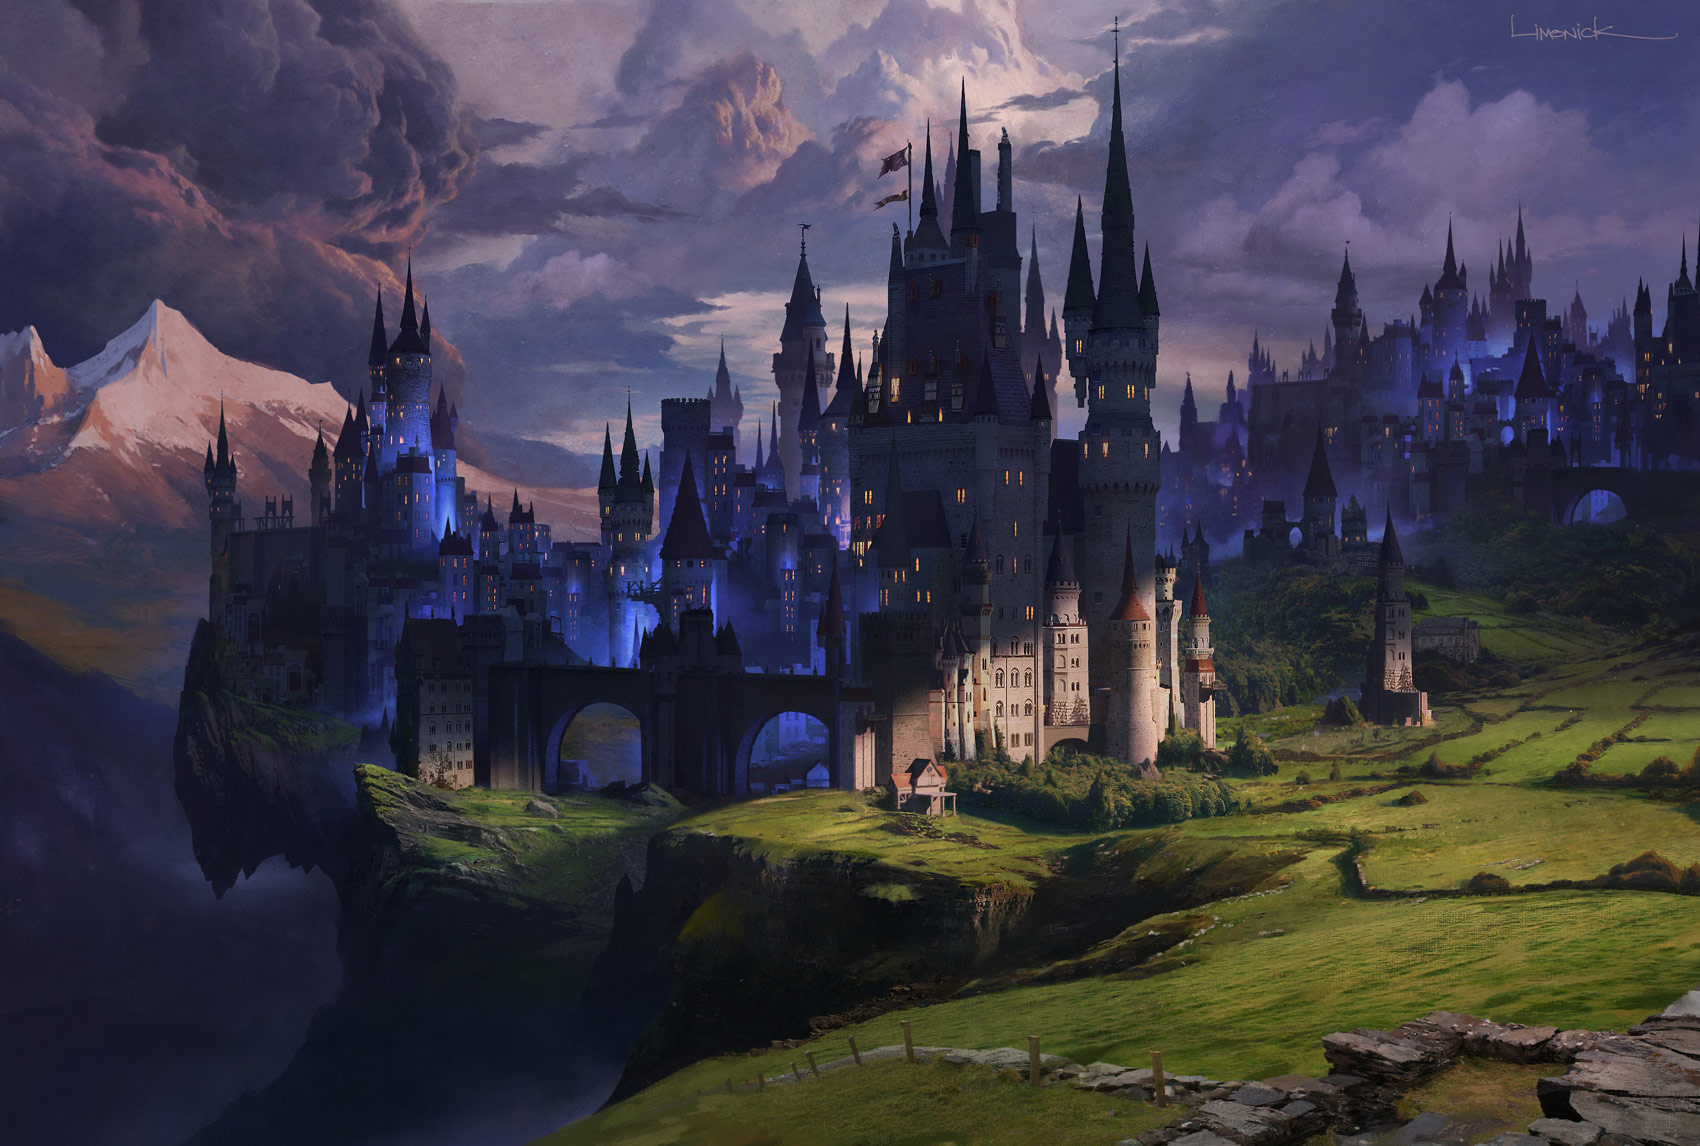 Dark Castle Wallpaper by HD Wallpapers Daily